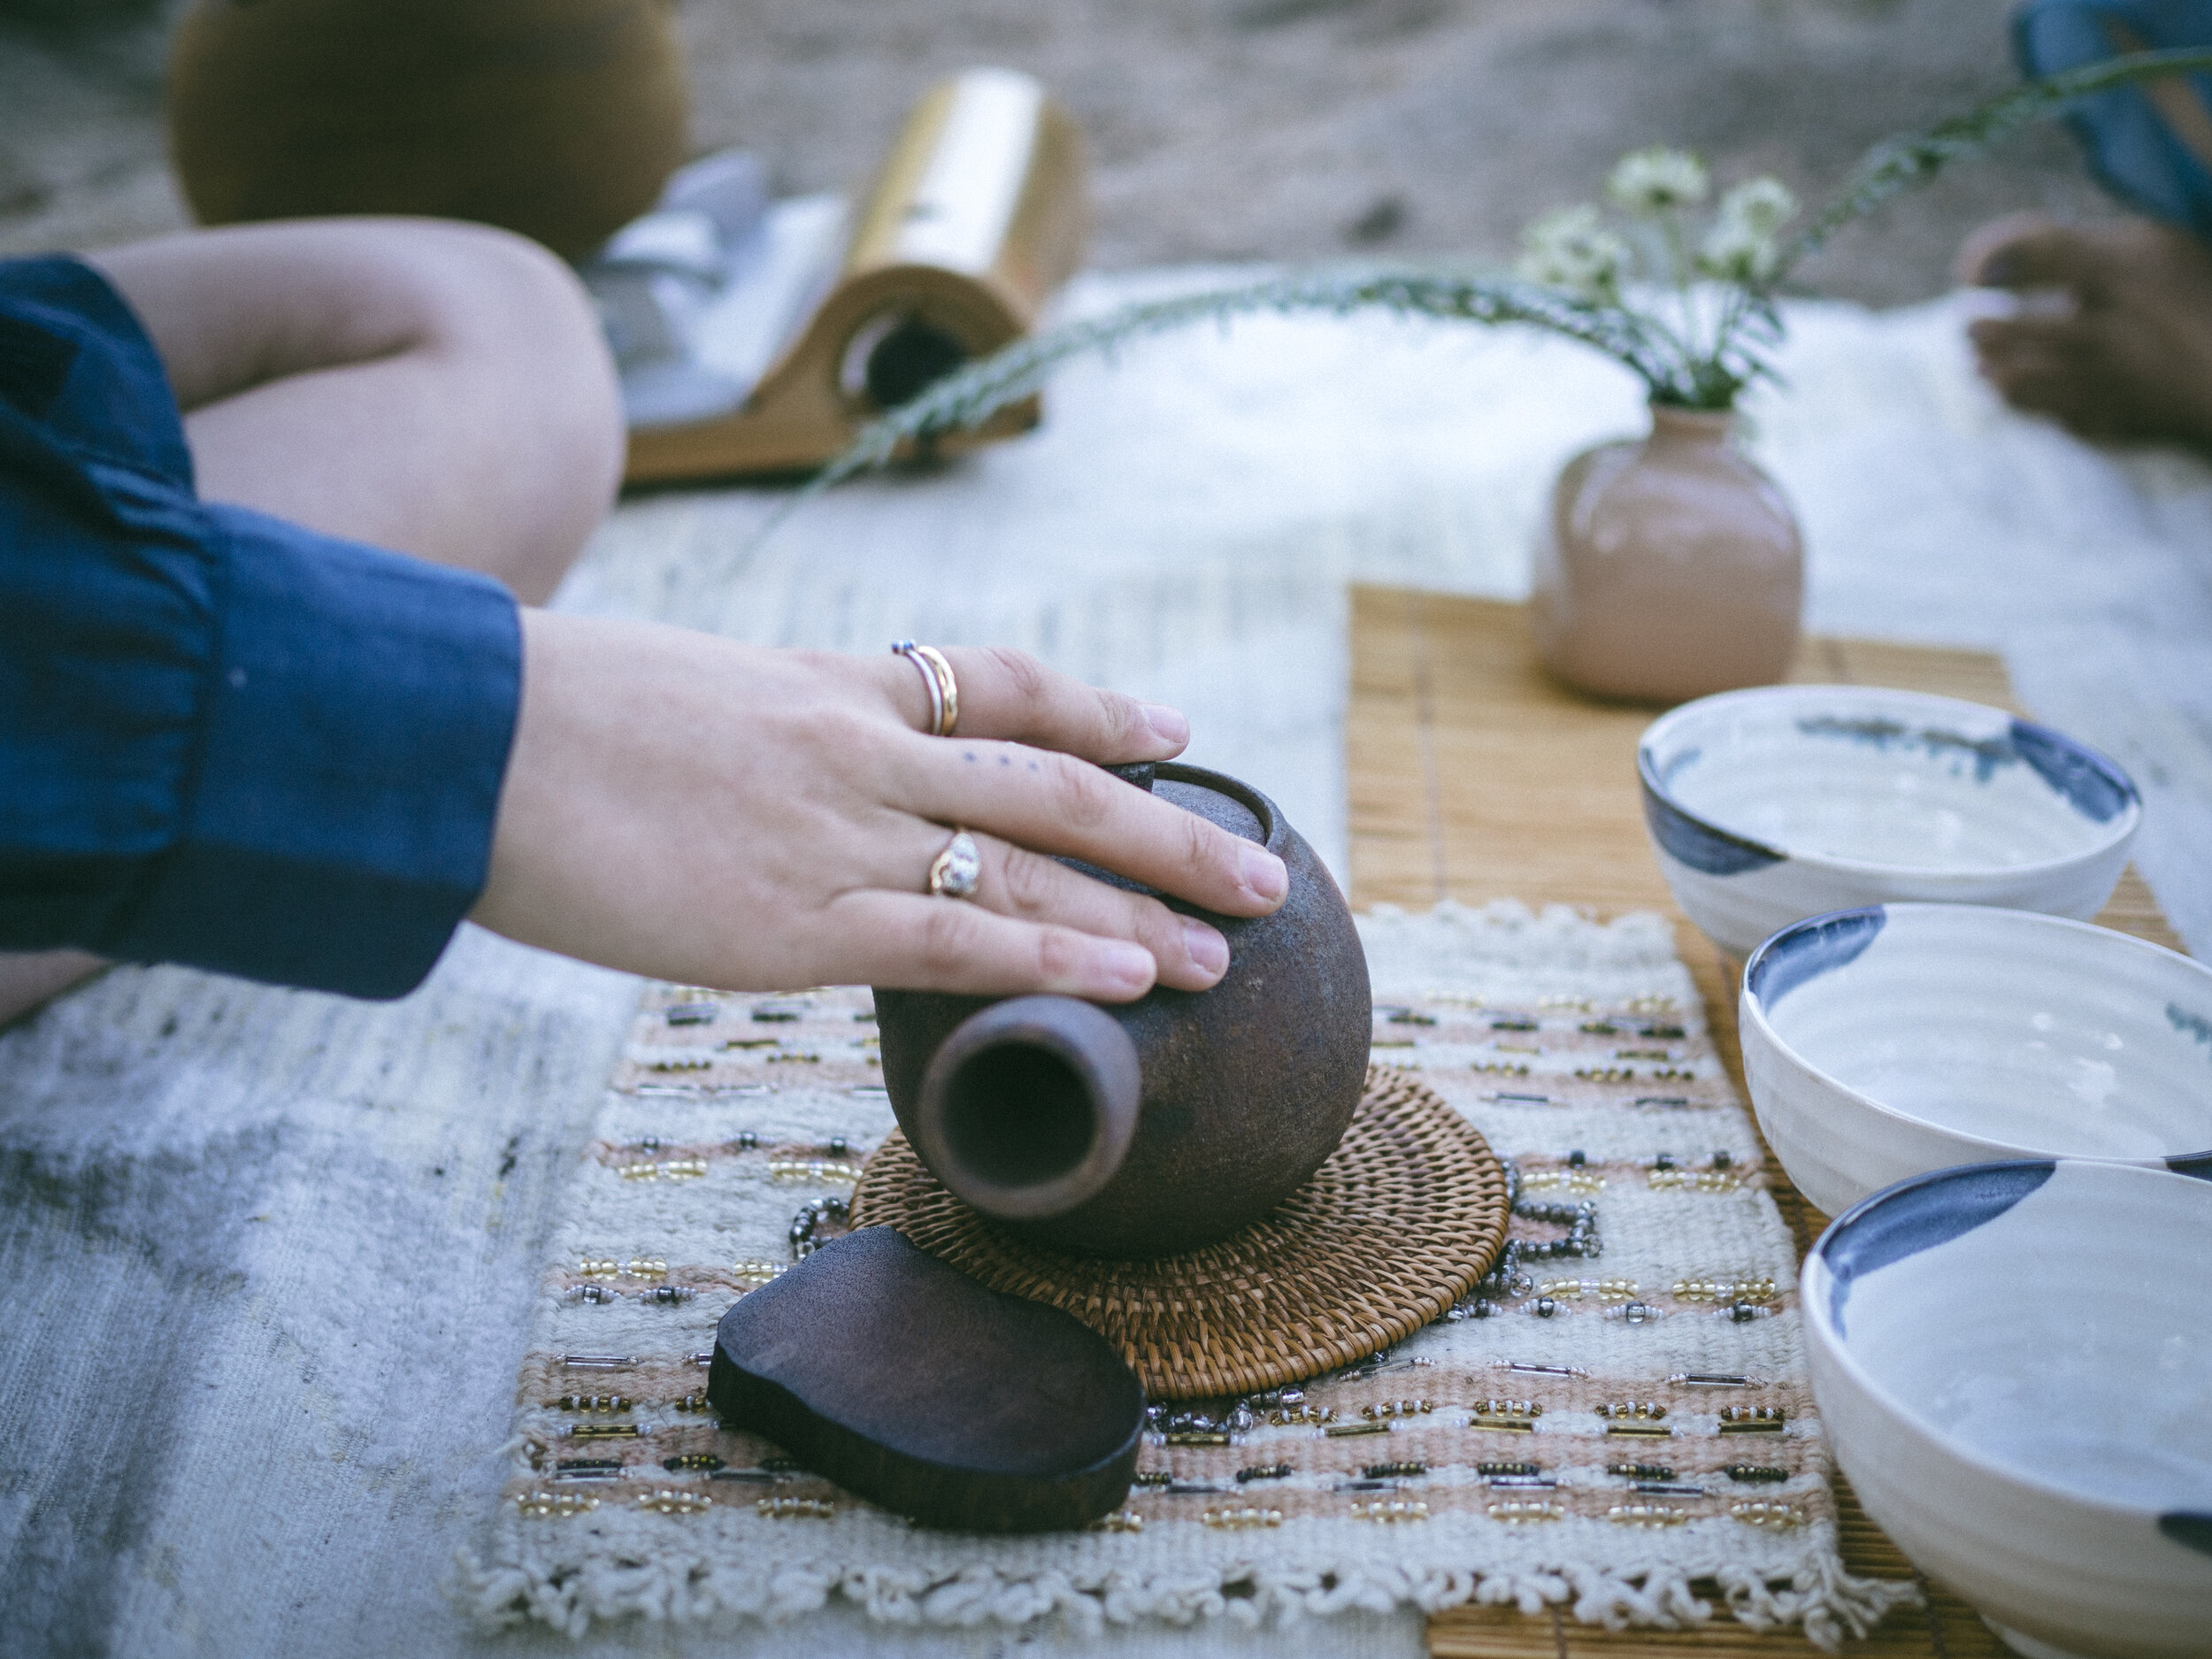 Friday Evenings - Boulder, Colorado4:00-6:30pmJoin me as we hike into a remote location to enjoy beautiful bowls of tea!